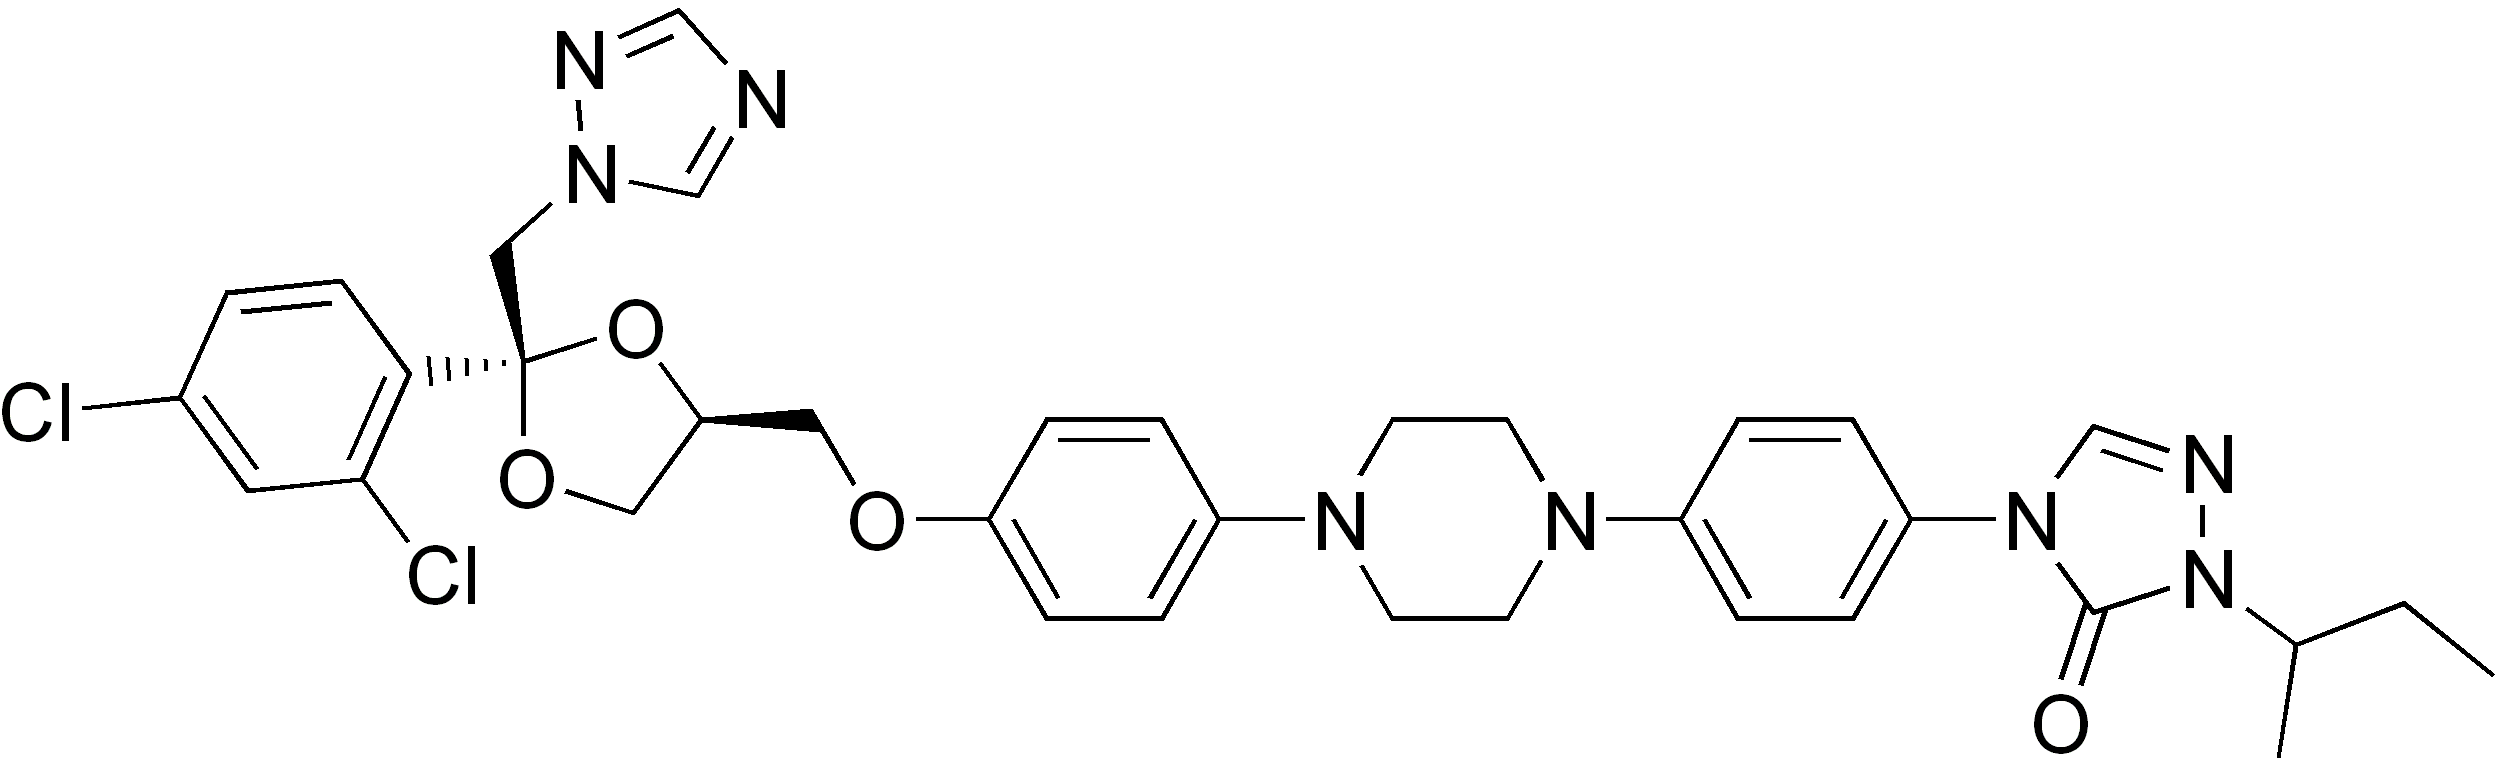 Depiction of Itraconazol